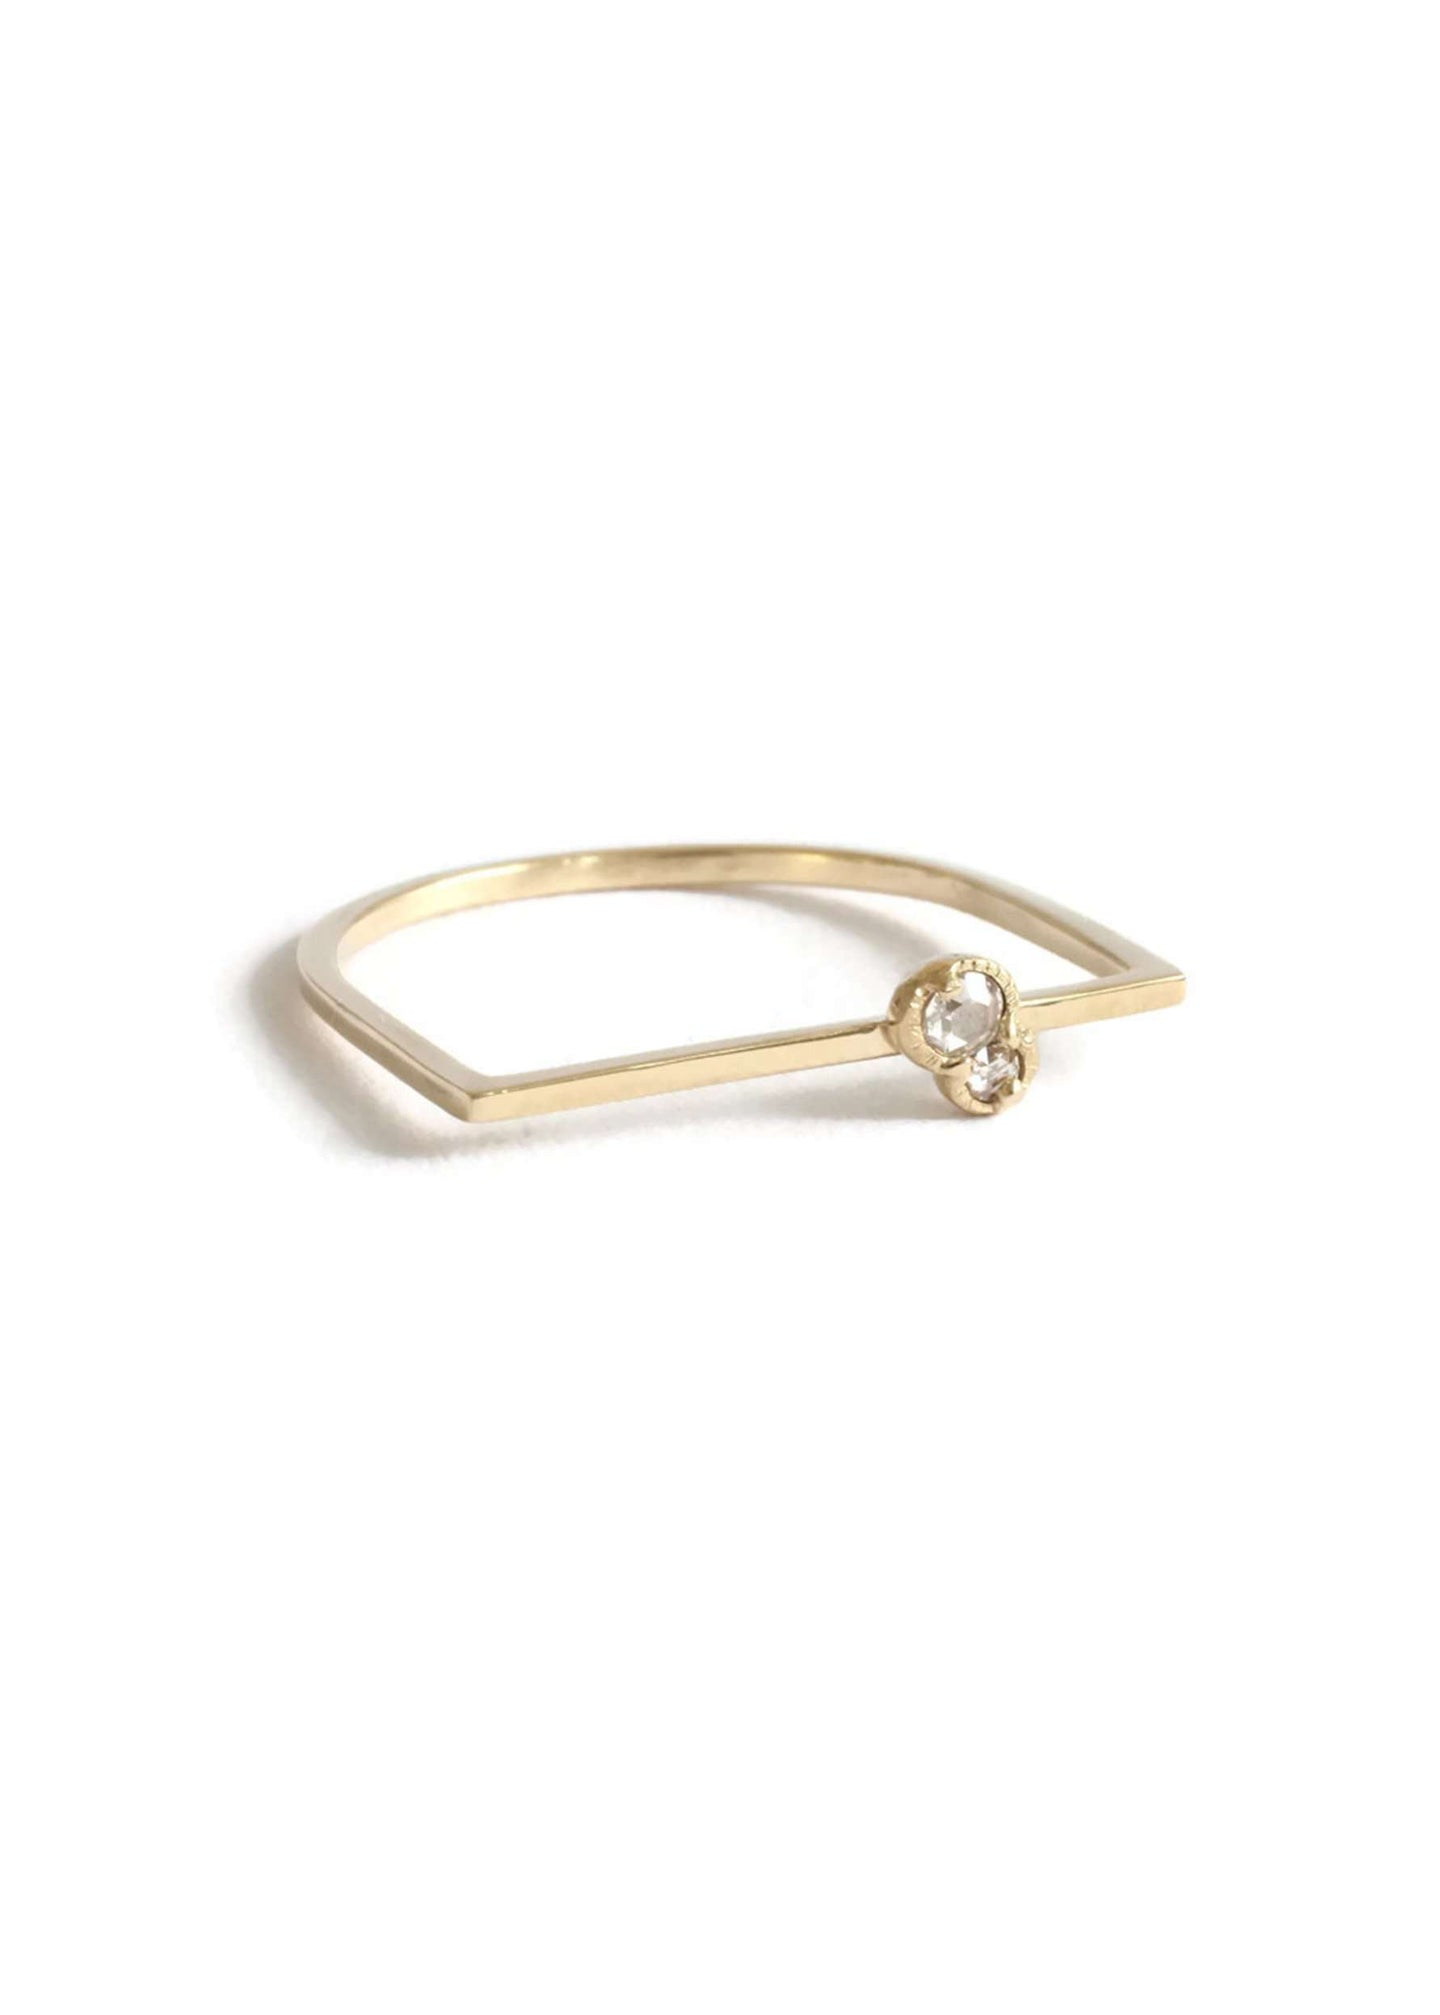 Twin City Bae | Minimal 14K gold and double diamond bar ring | Rue Saint Paul